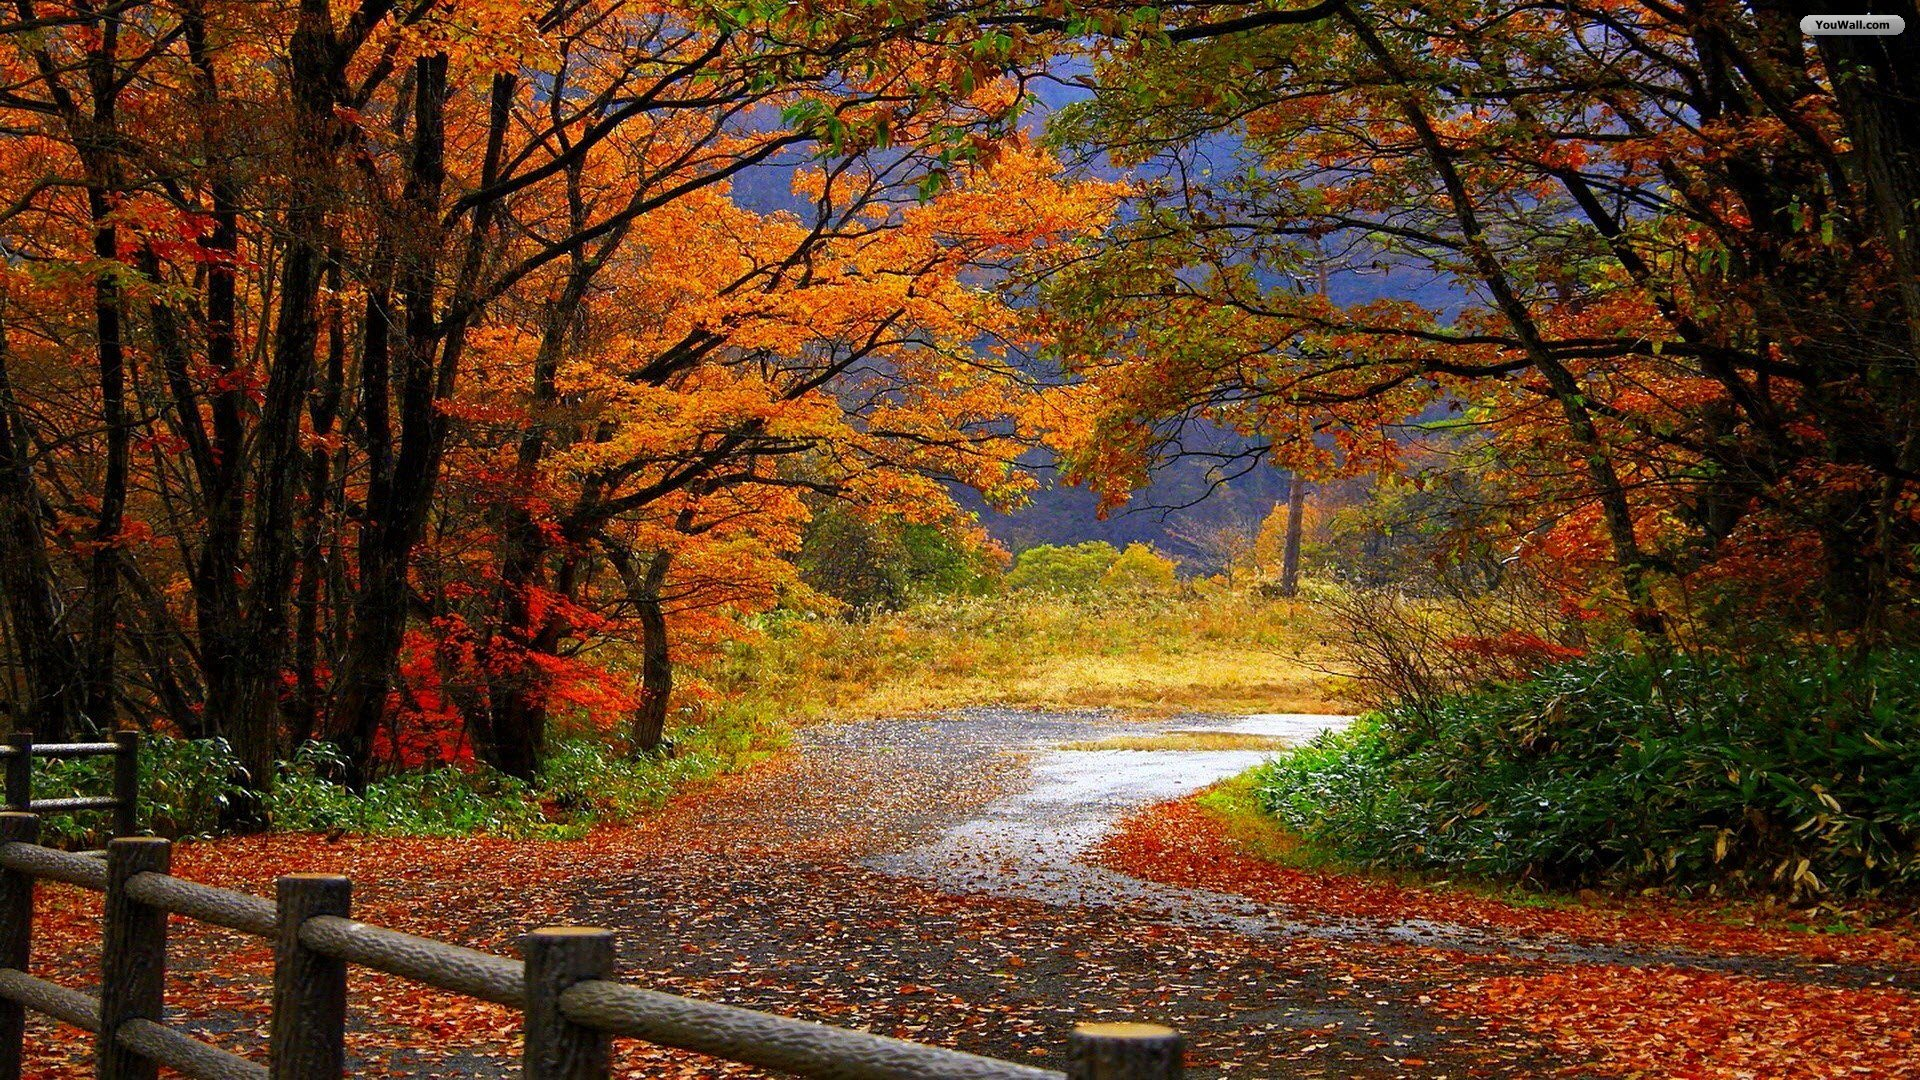 Autumn Scenery Wallpaper   wallpaperwallpapersfree wallpaper 1920x1080